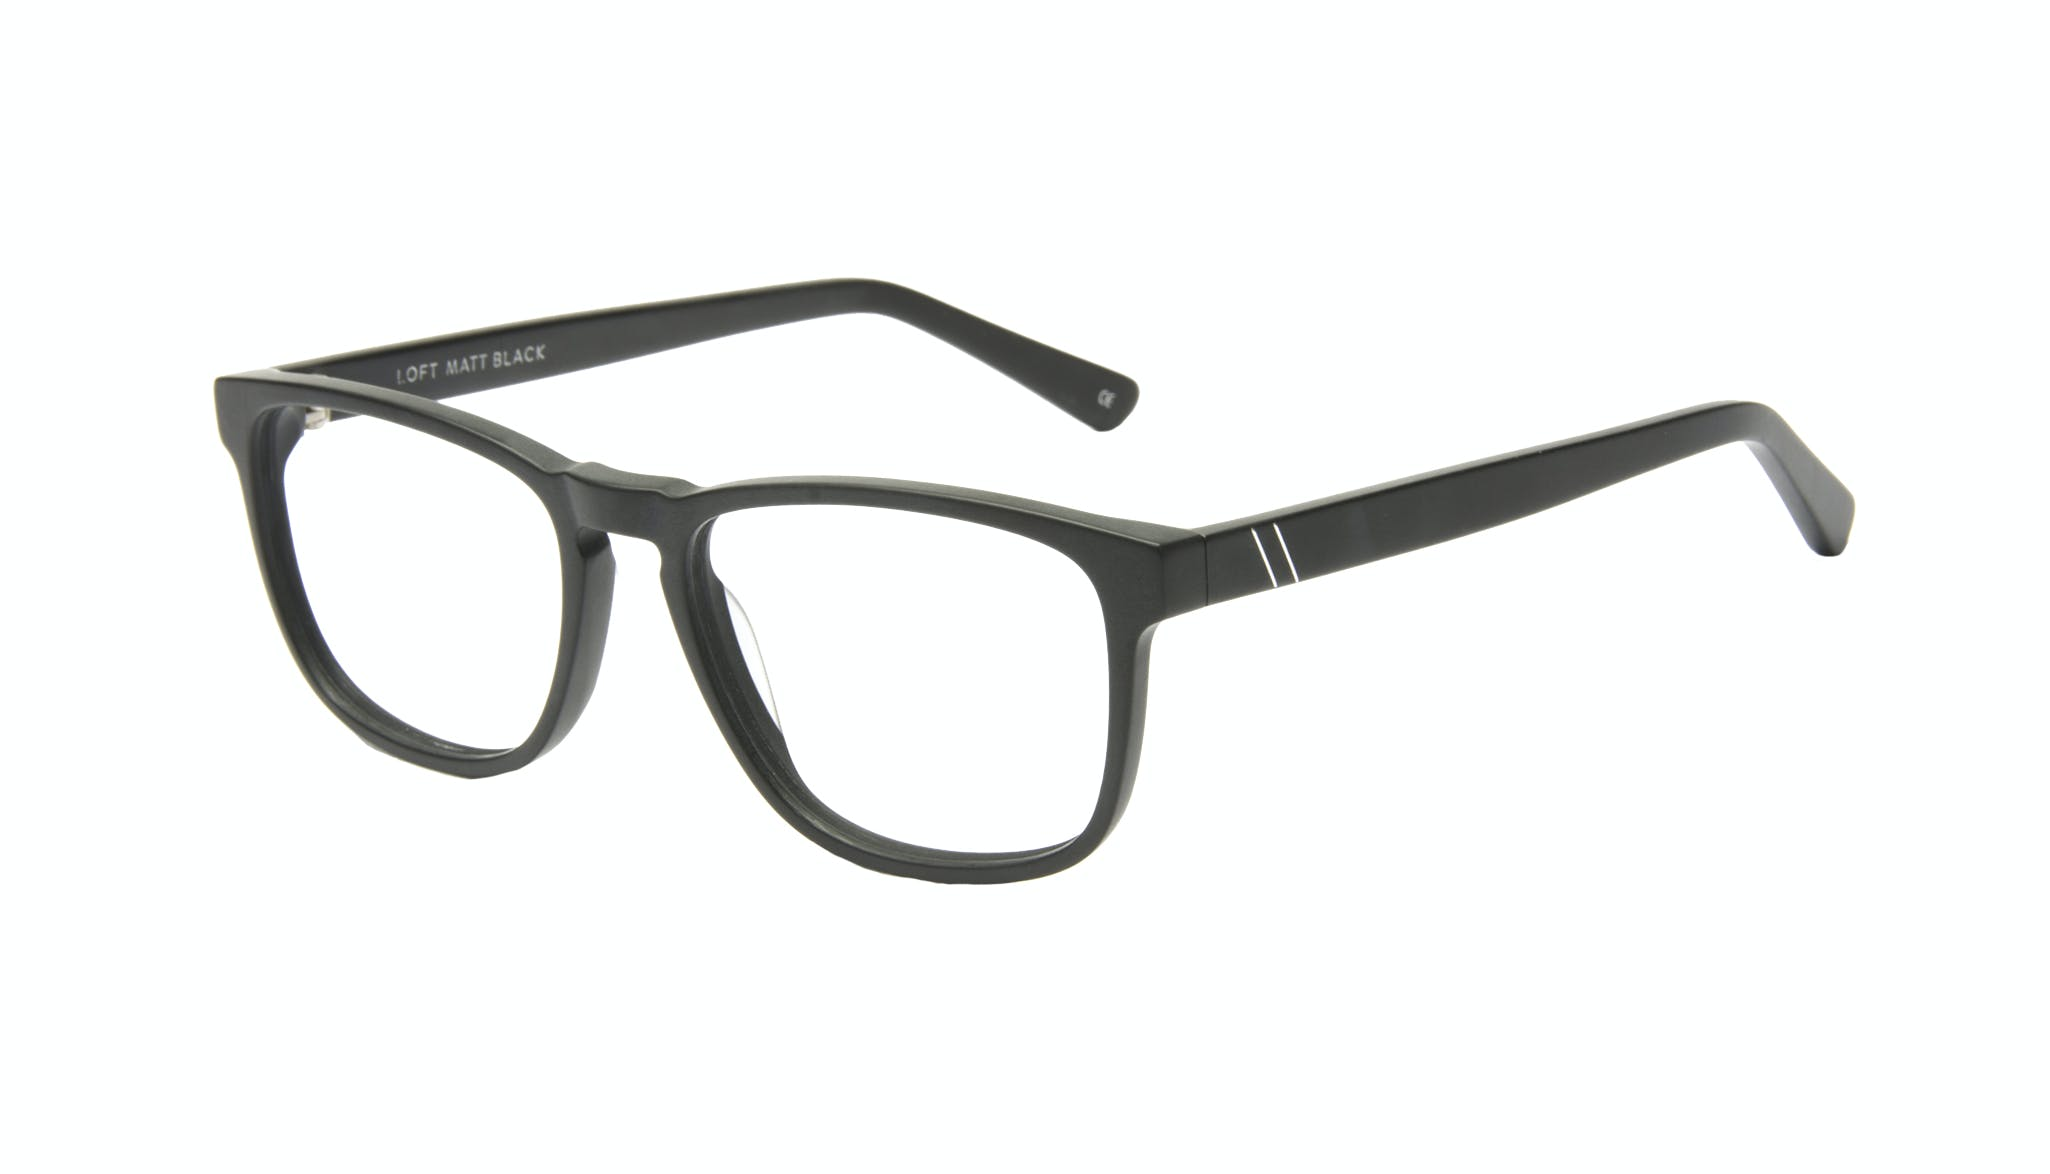 Affordable Fashion Glasses Rectangle Eyeglasses Men Loft Matte Black Tilt